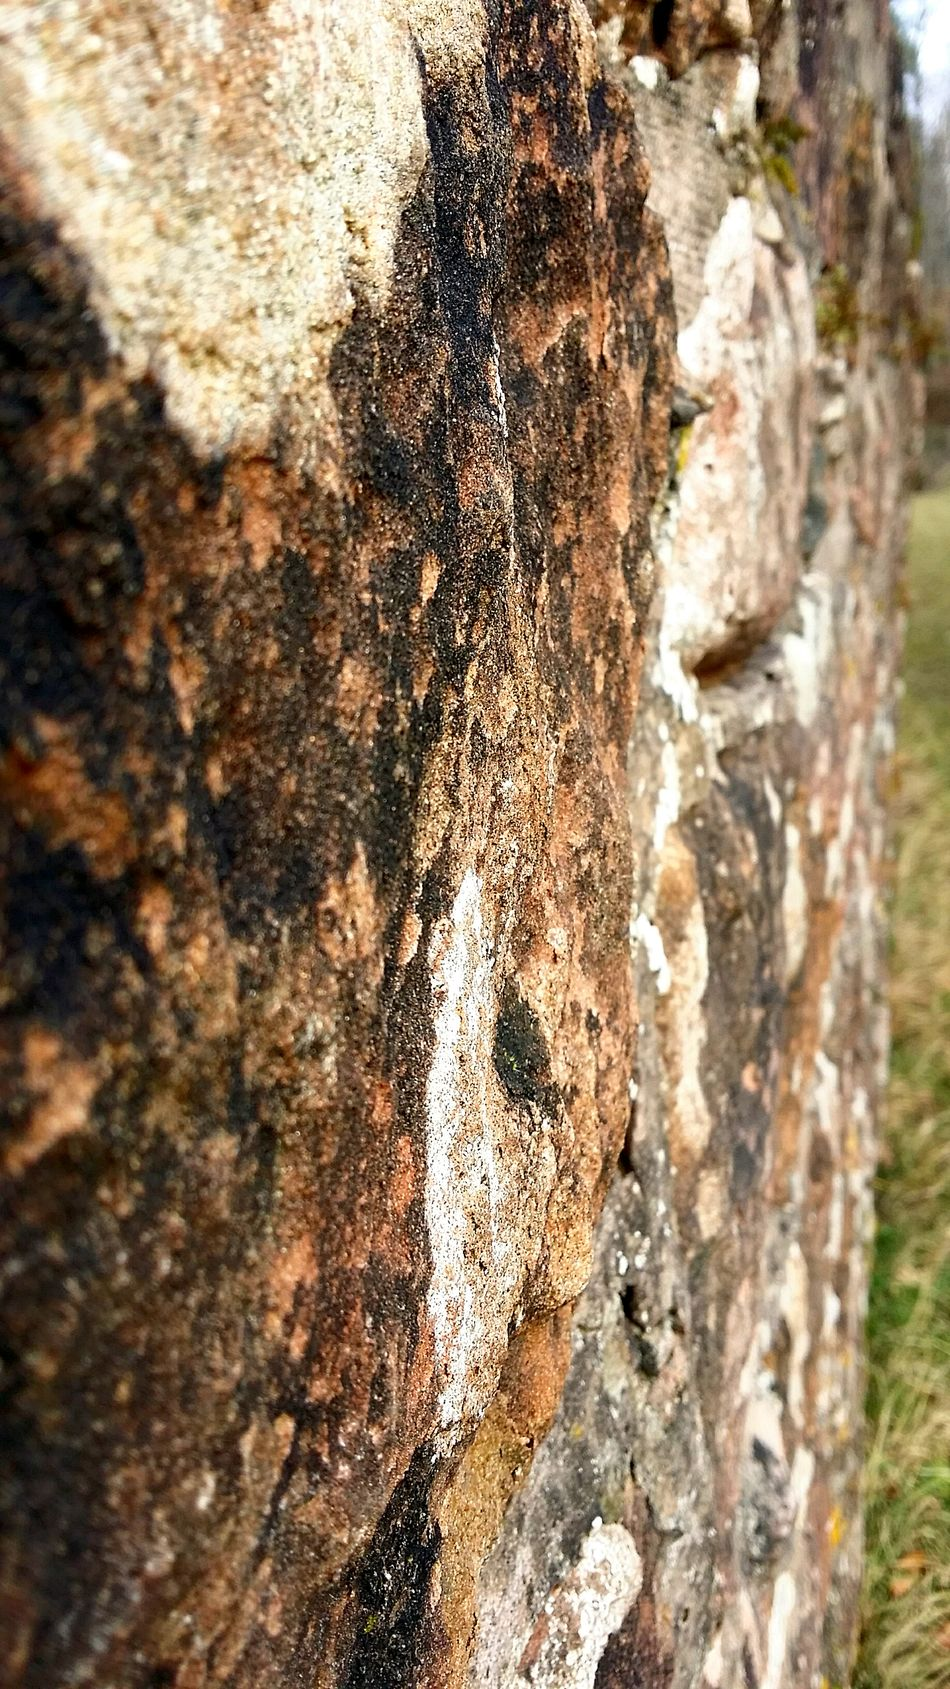 Close-up Nature Outdoors Textured  Rough Rock Wall Rock Solo Women Travelers SoloTraveller Solotraveler Kaiserslautern Germany My Travel Germany 🇩🇪 Deutschland